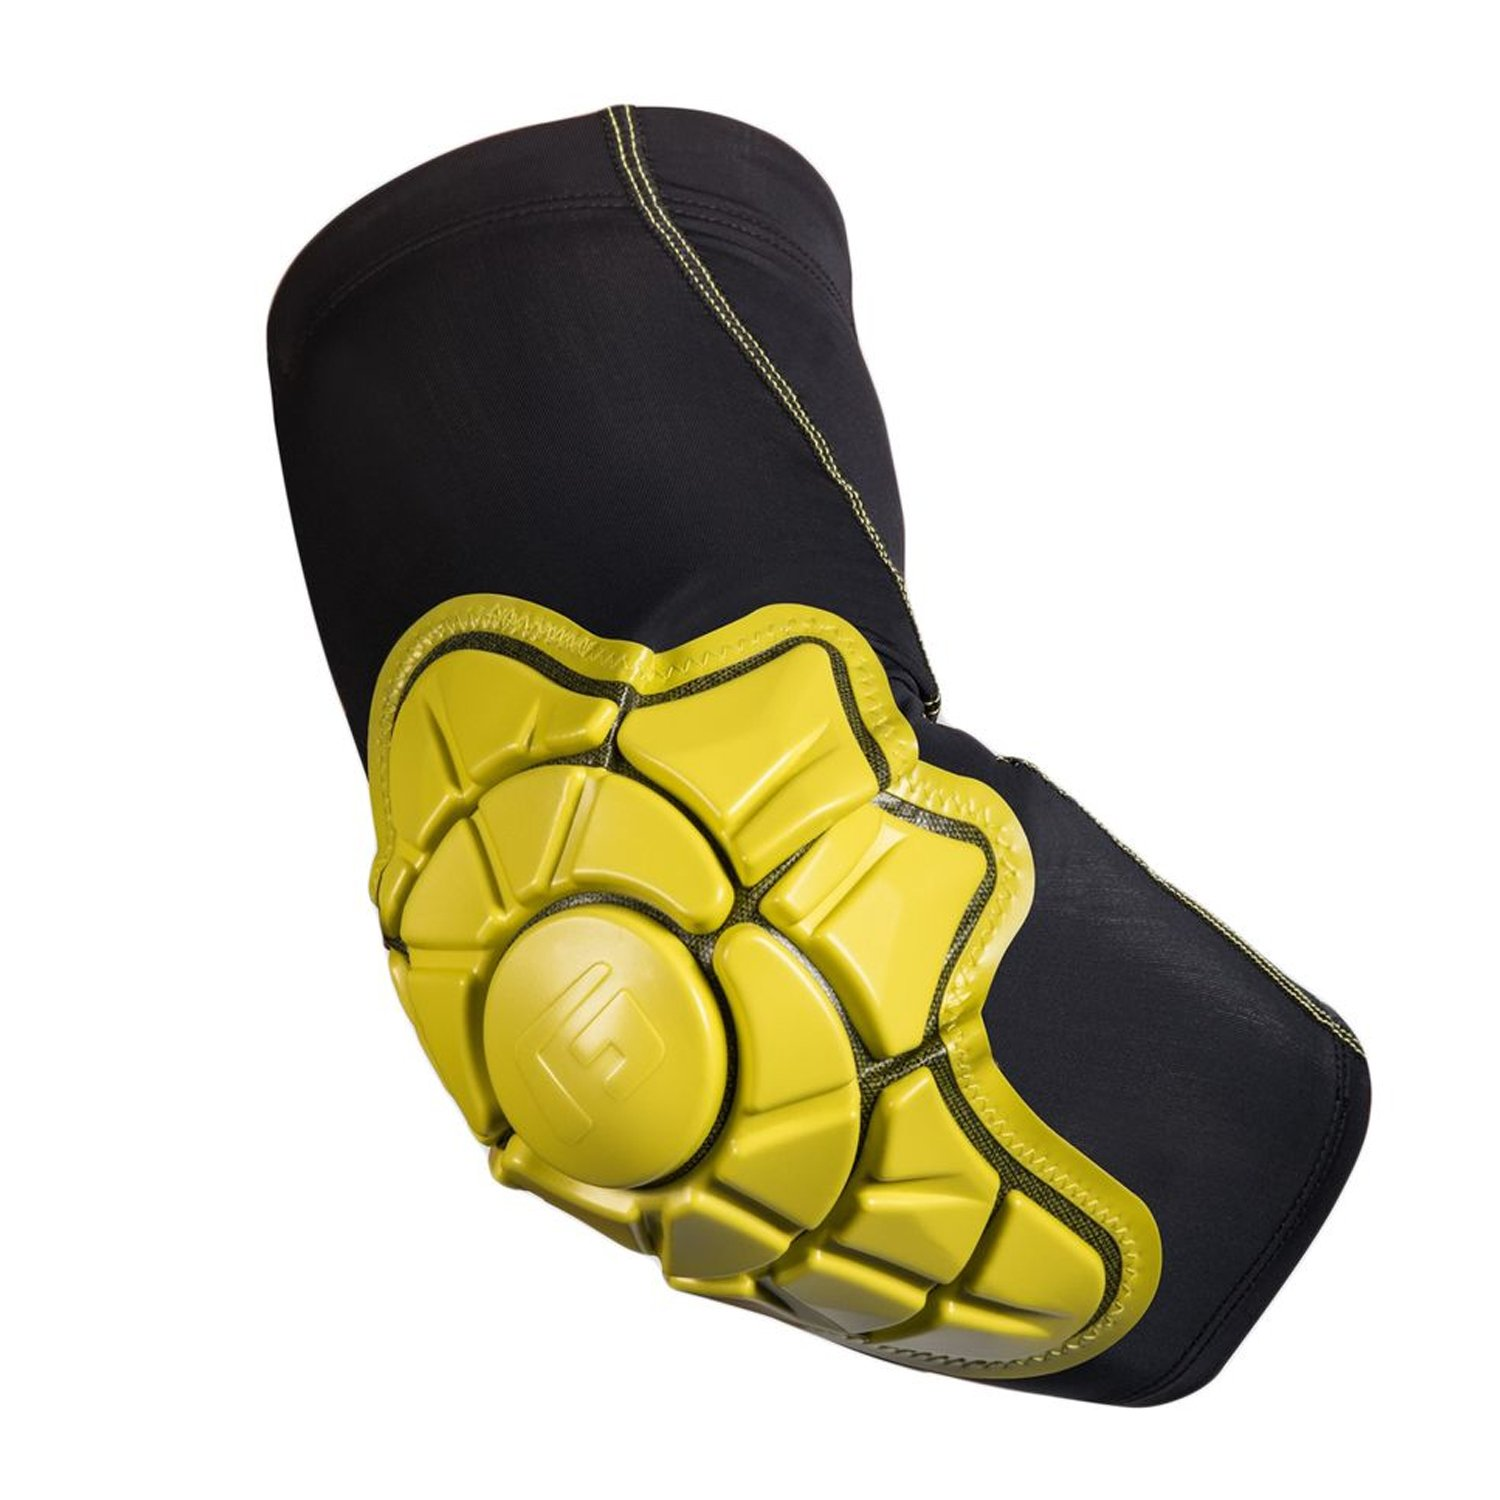 Amazon.com : G-Form Pro-X Impact Protection Elbow Pads (Yellow ...